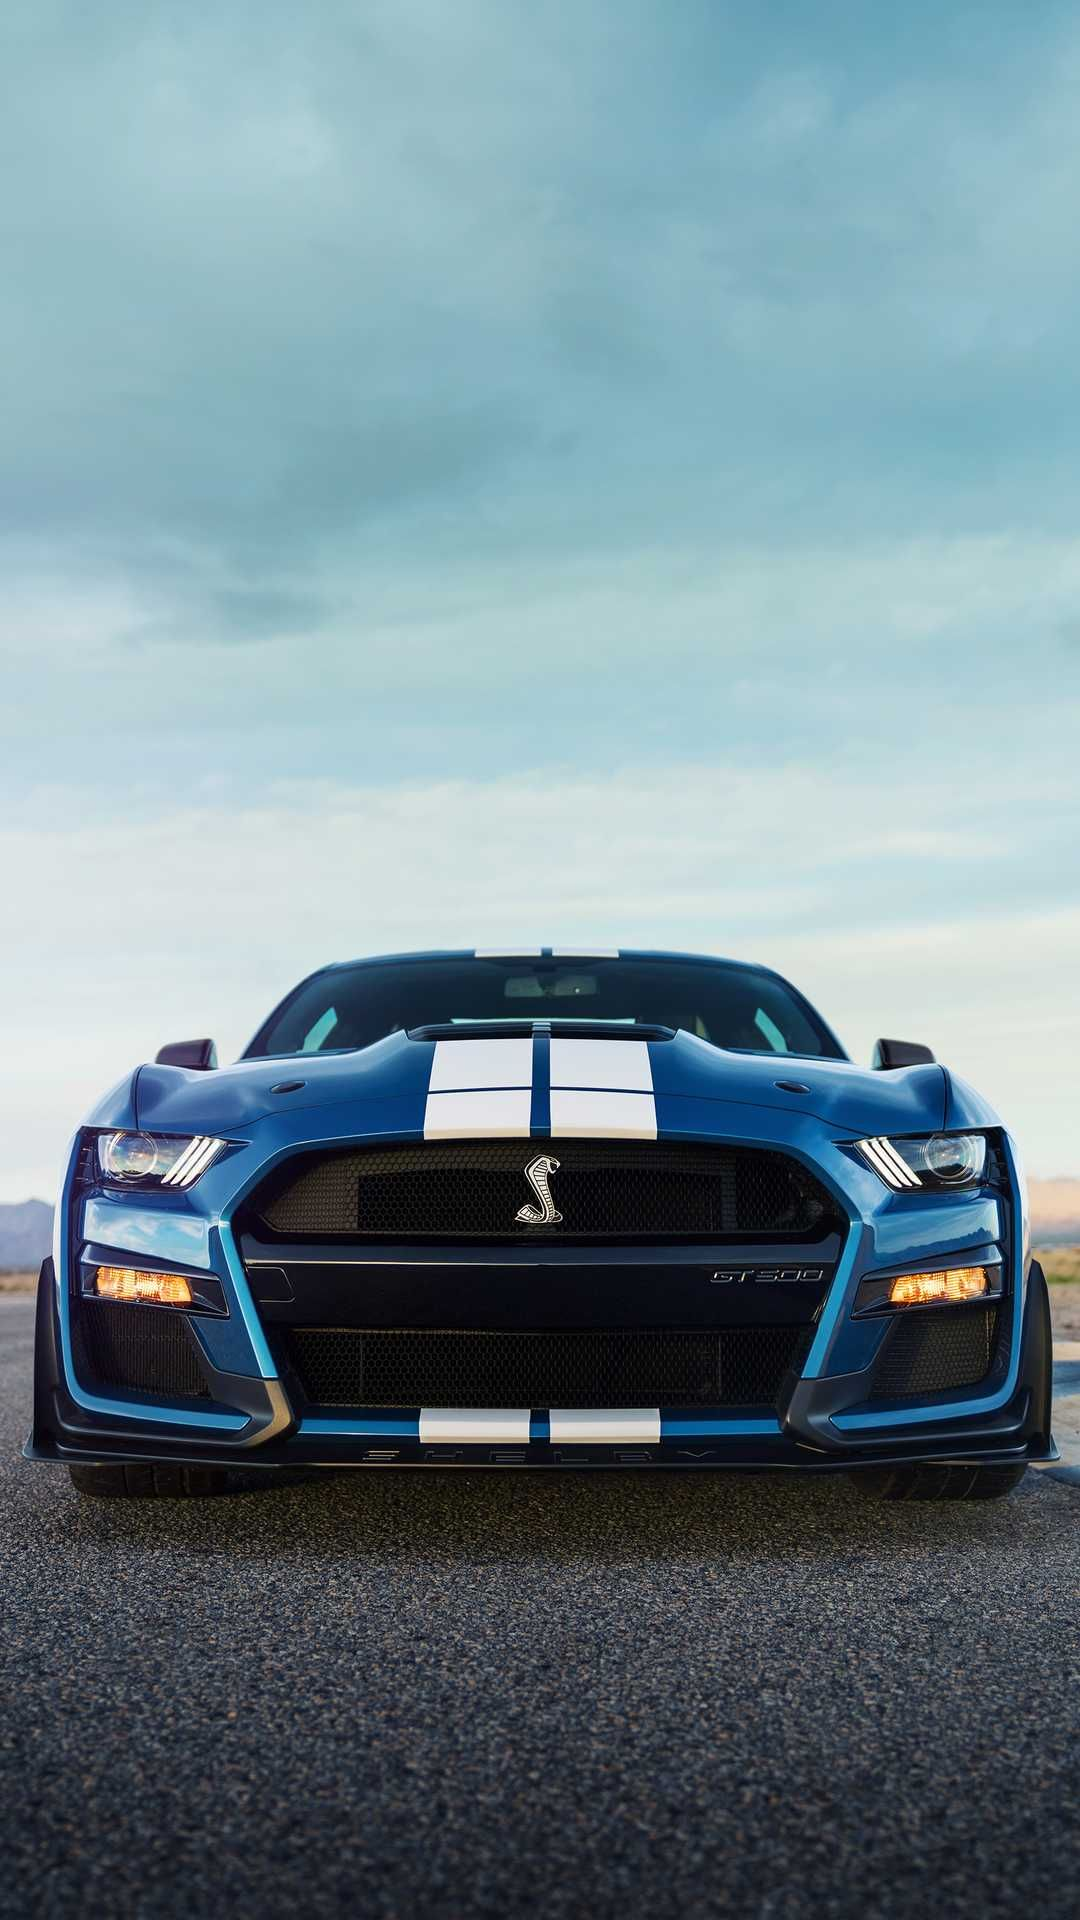 New 2020 Ford Mustang Shelby Gt500 Blue Front Ford Mustang Shelby Gt500 Ford Mustang Shelby Mustang Shelby